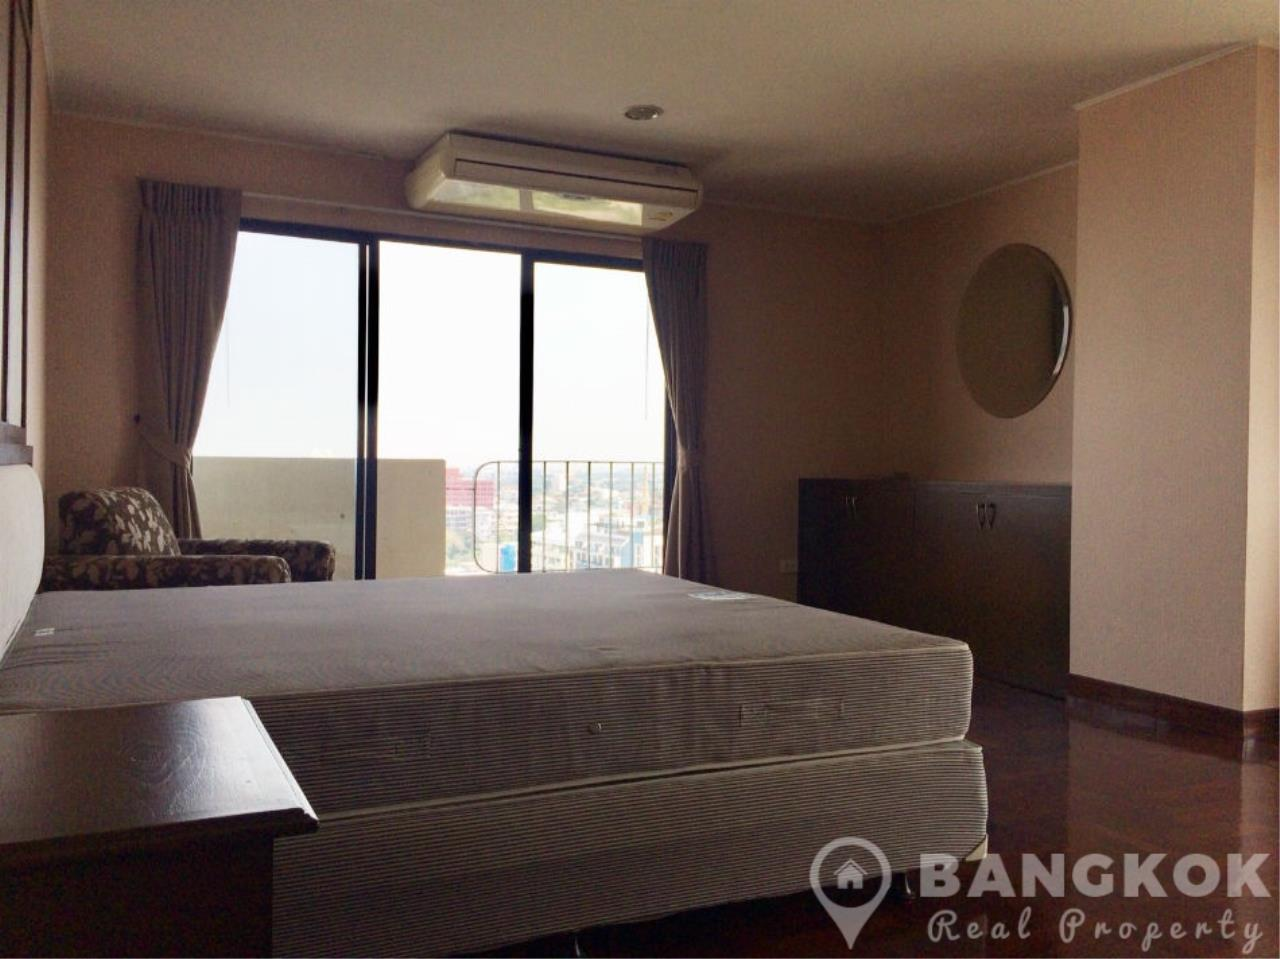 Bangkok Real Property Agency's Casa Viva | Very Spacious 3 Bed 3 Bath Condo in Ekkamai 8